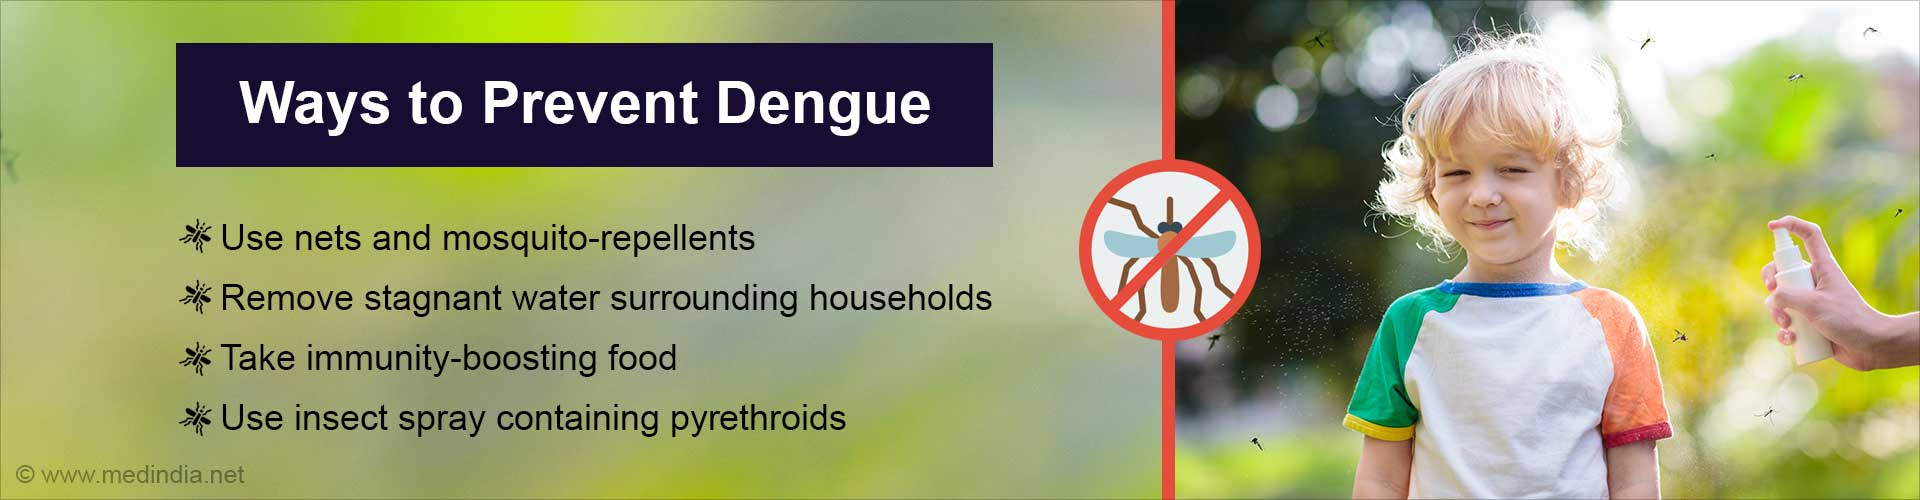 How to Deal With Dengue During the COVID-19 Pandemic?